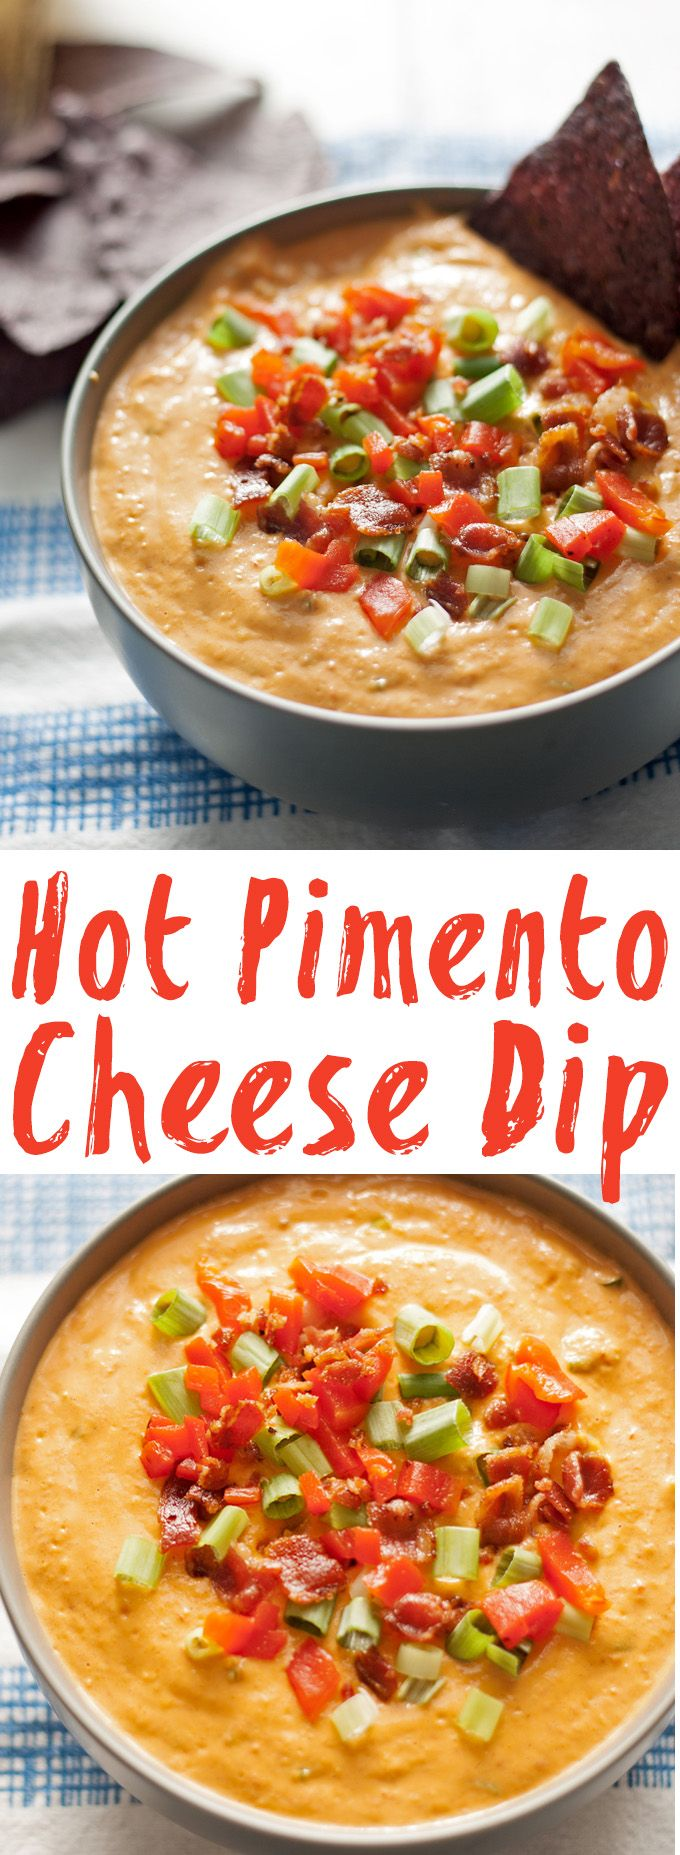 Make this hot pimento cheese dip the next time you are throwing a party or tailgating! It's the perfect fun appetizer! | honeyandbirch.com